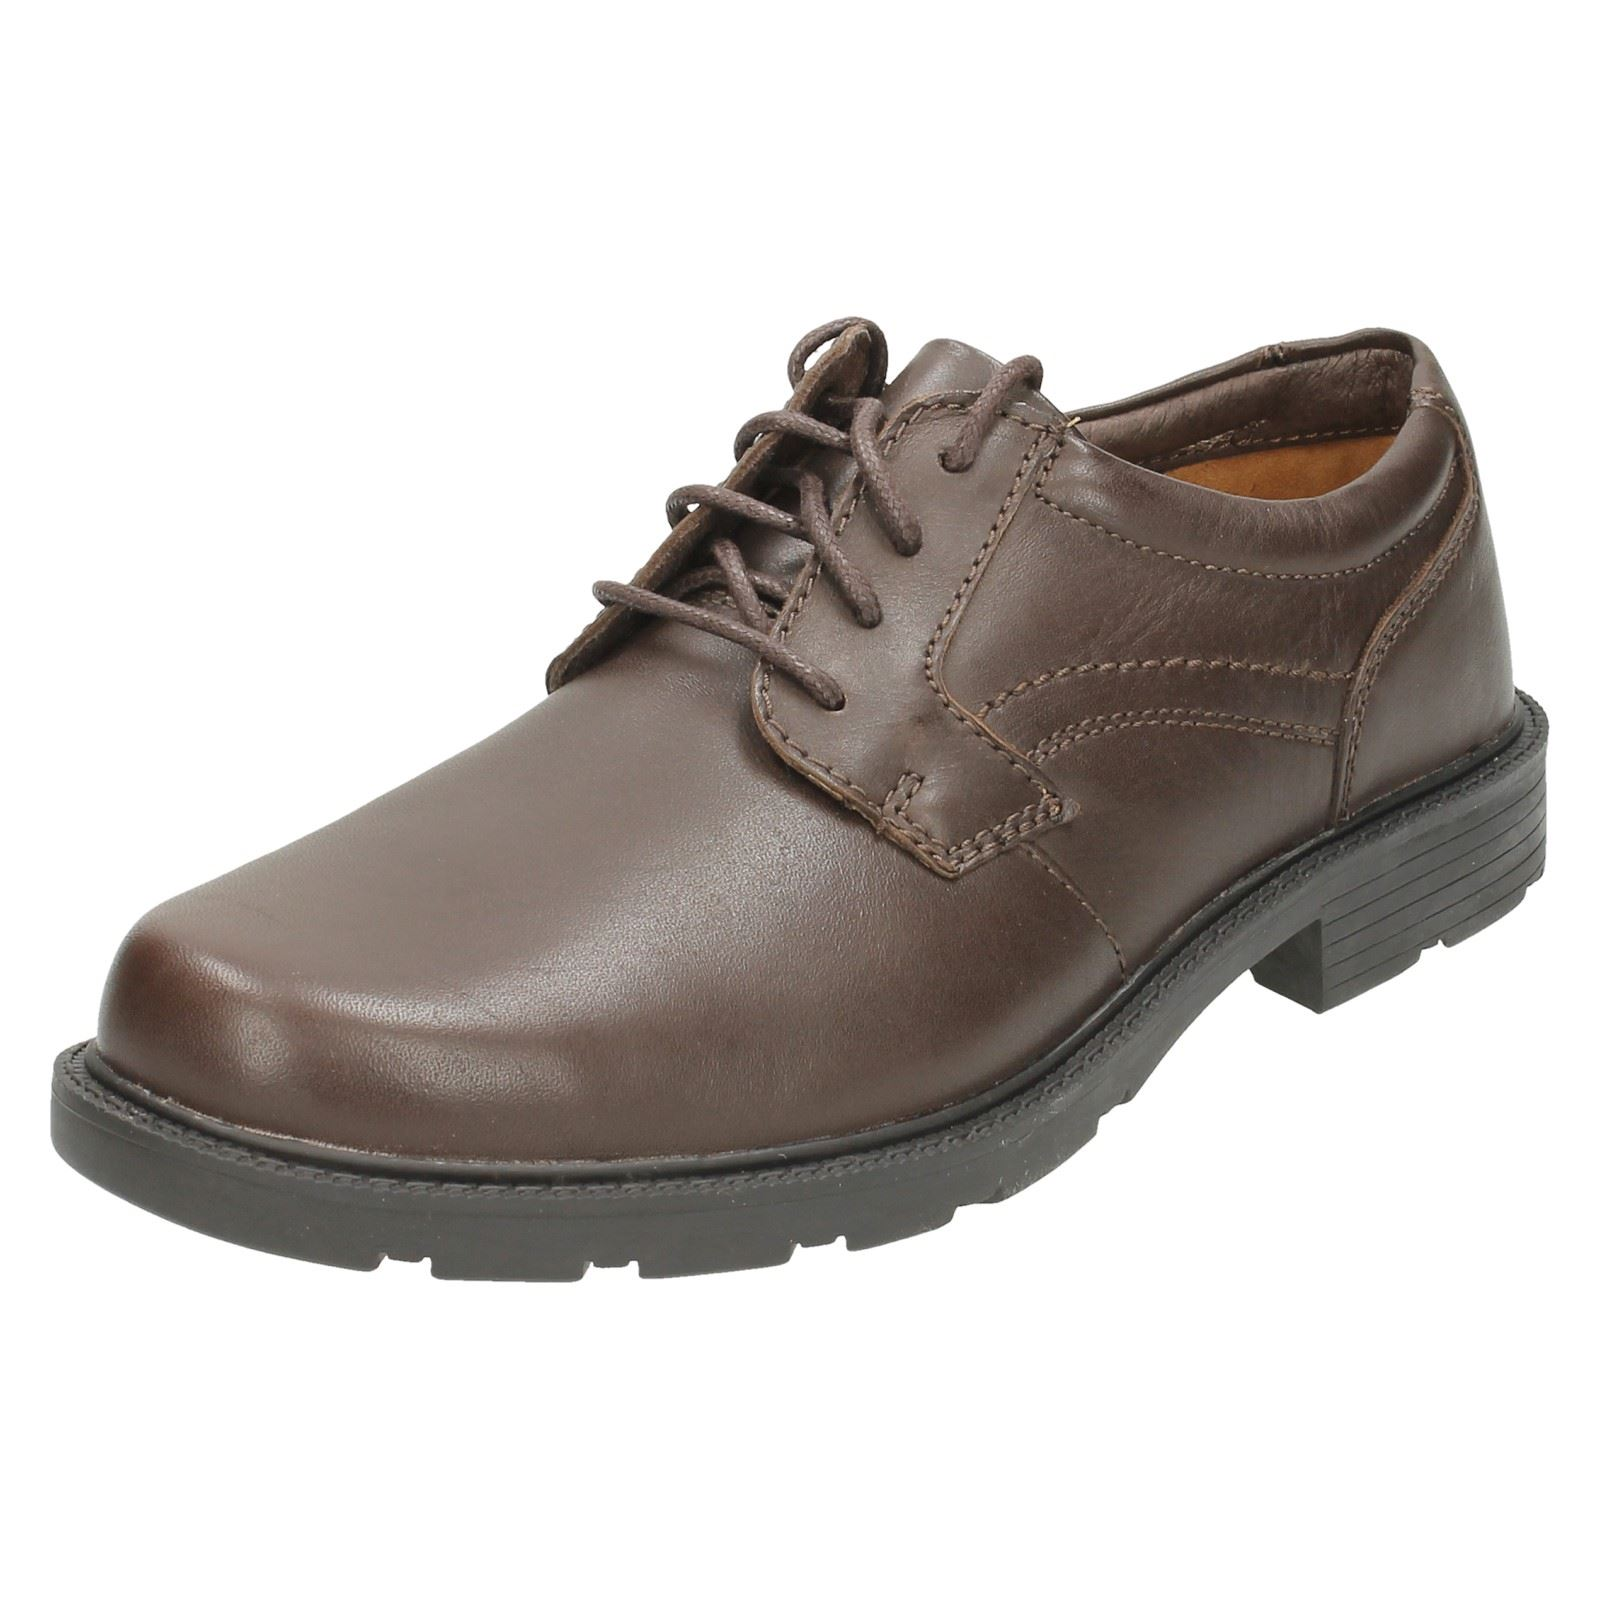 Gate Up Clarks Lace Shoes Lair Brown Mens wSp0fq6S